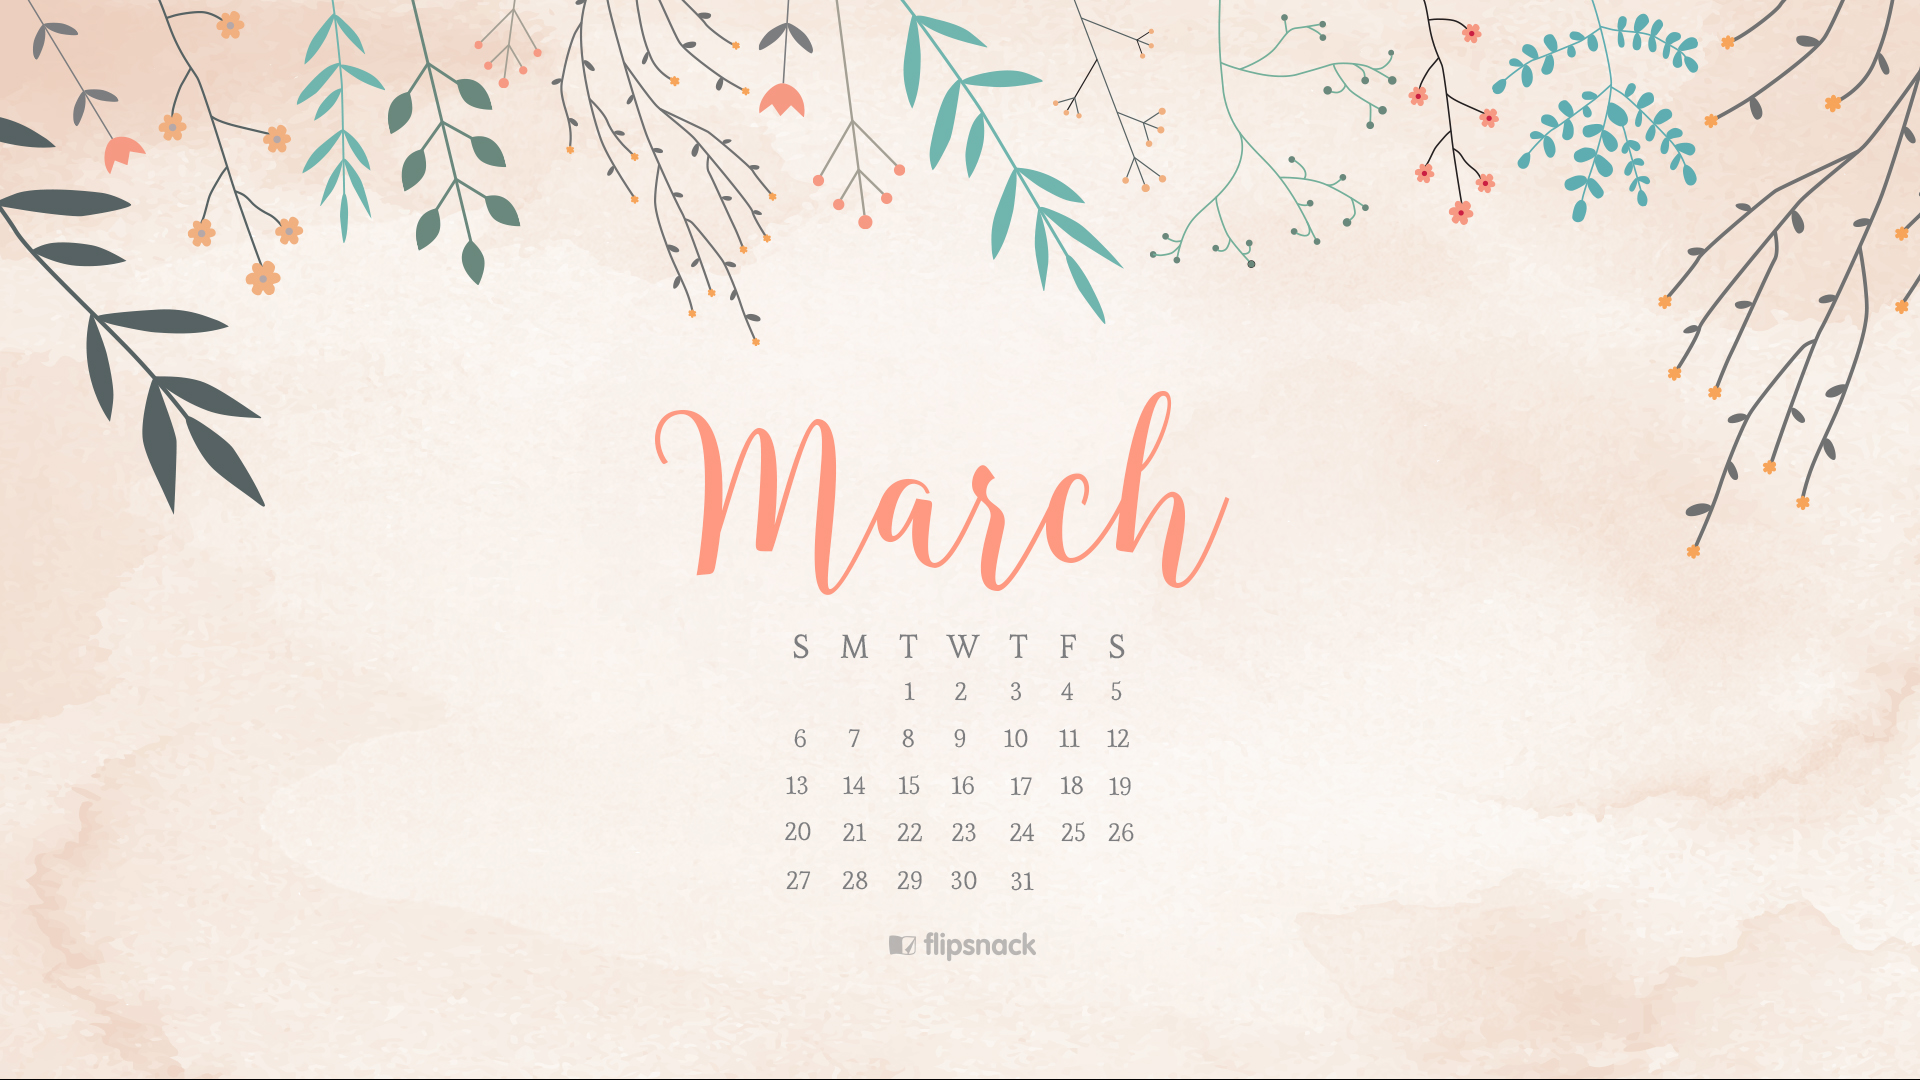 March 2016 calendar wallpaper desktop background 1920x1080